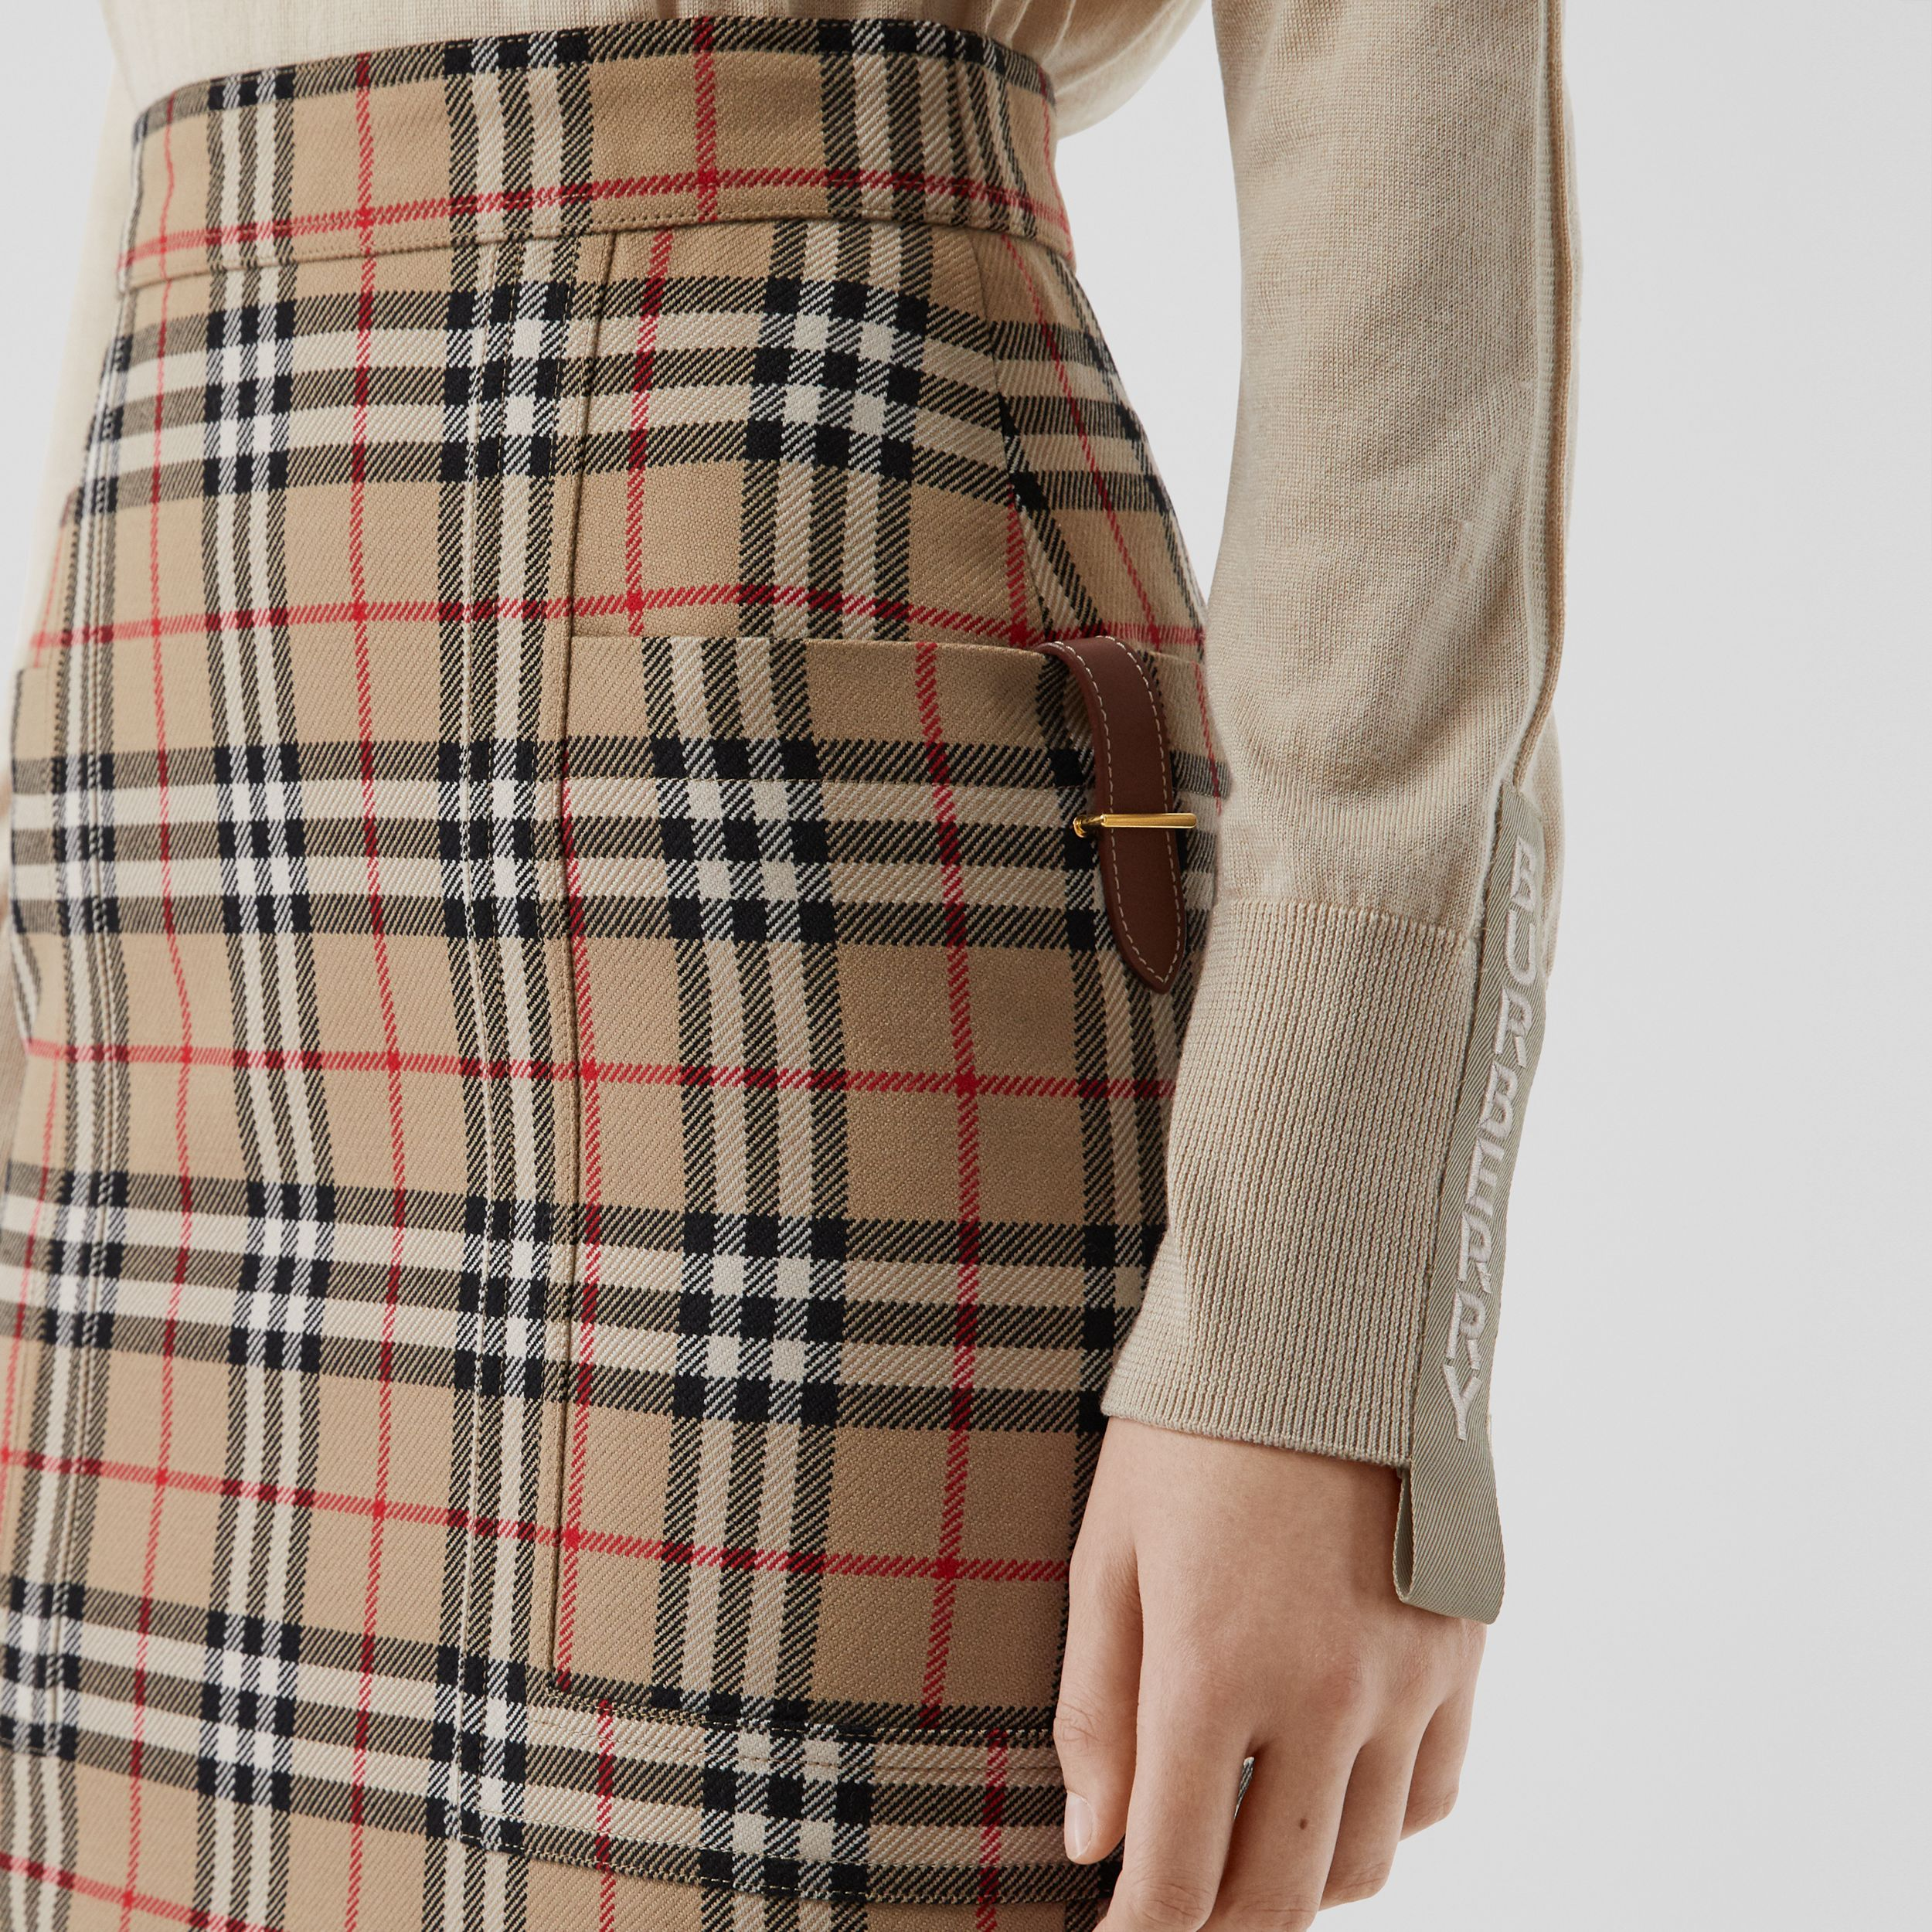 Pocket Detail Vintage Check Wool Pencil Skirt in Archive Beige - Women | Burberry United States - 2